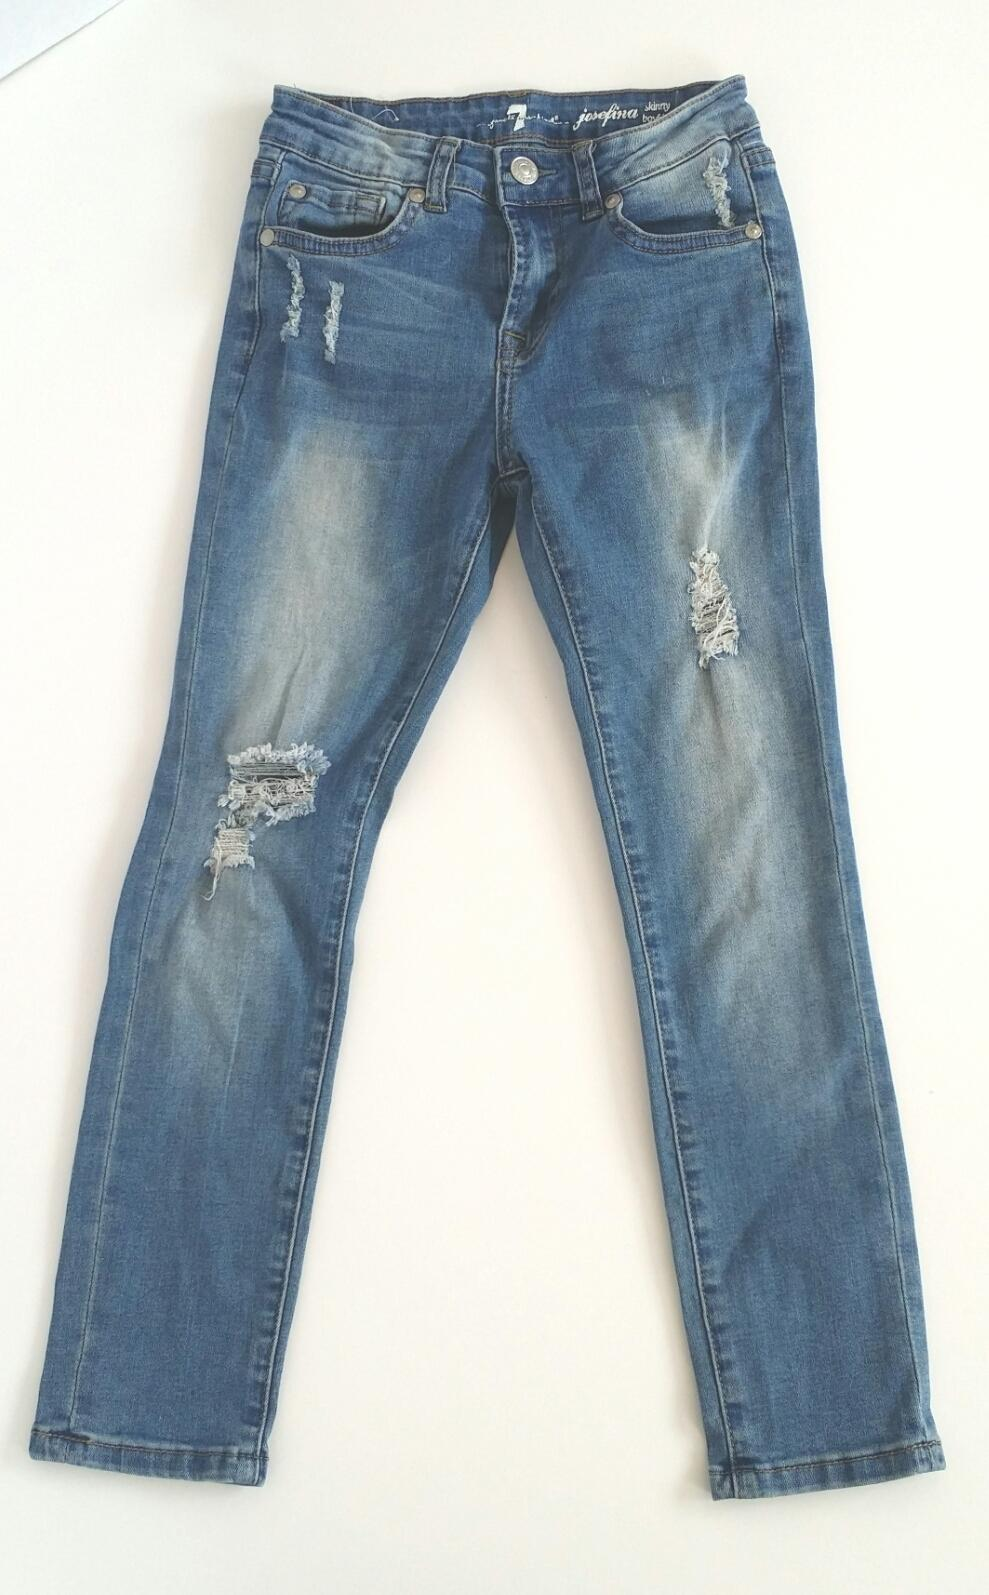 Seven-for-All-Mankind-10-YEARS-Distressed-Jeans_2083450A.jpg